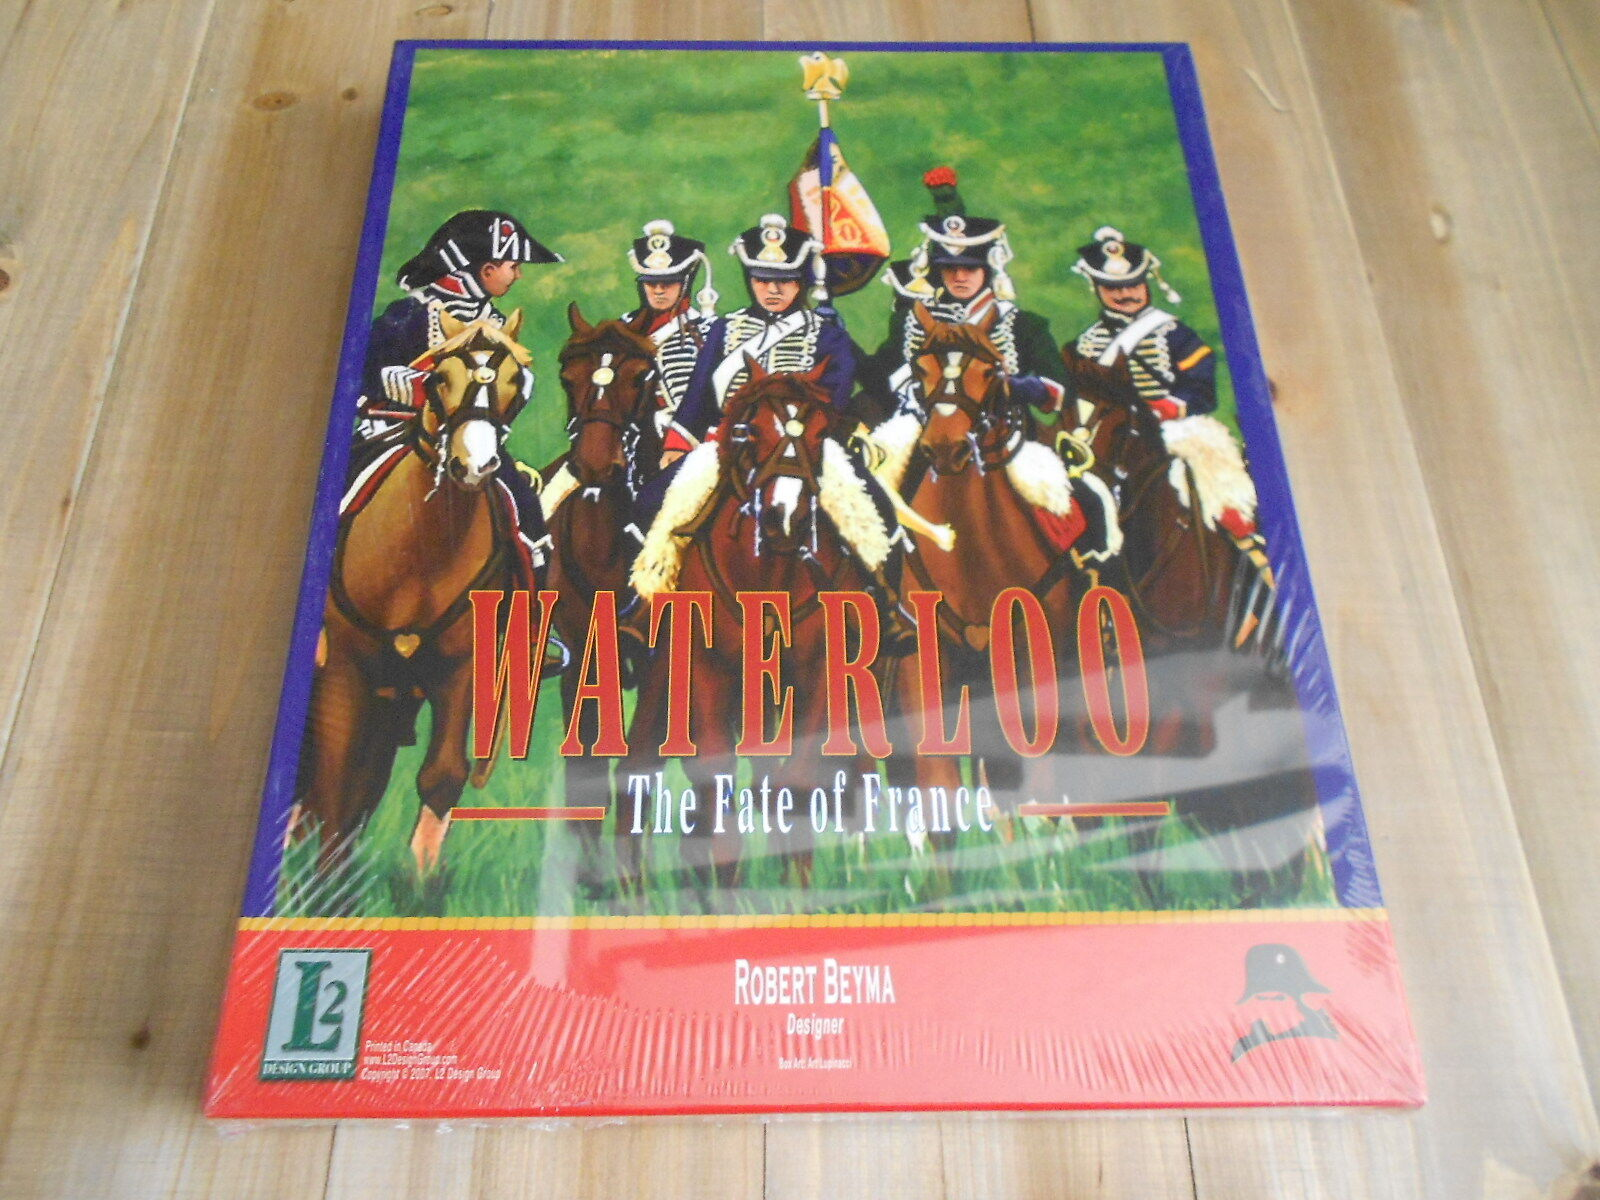 Juego wargame - WATERLOO - The Fate of France - L2 Design - SW Condition